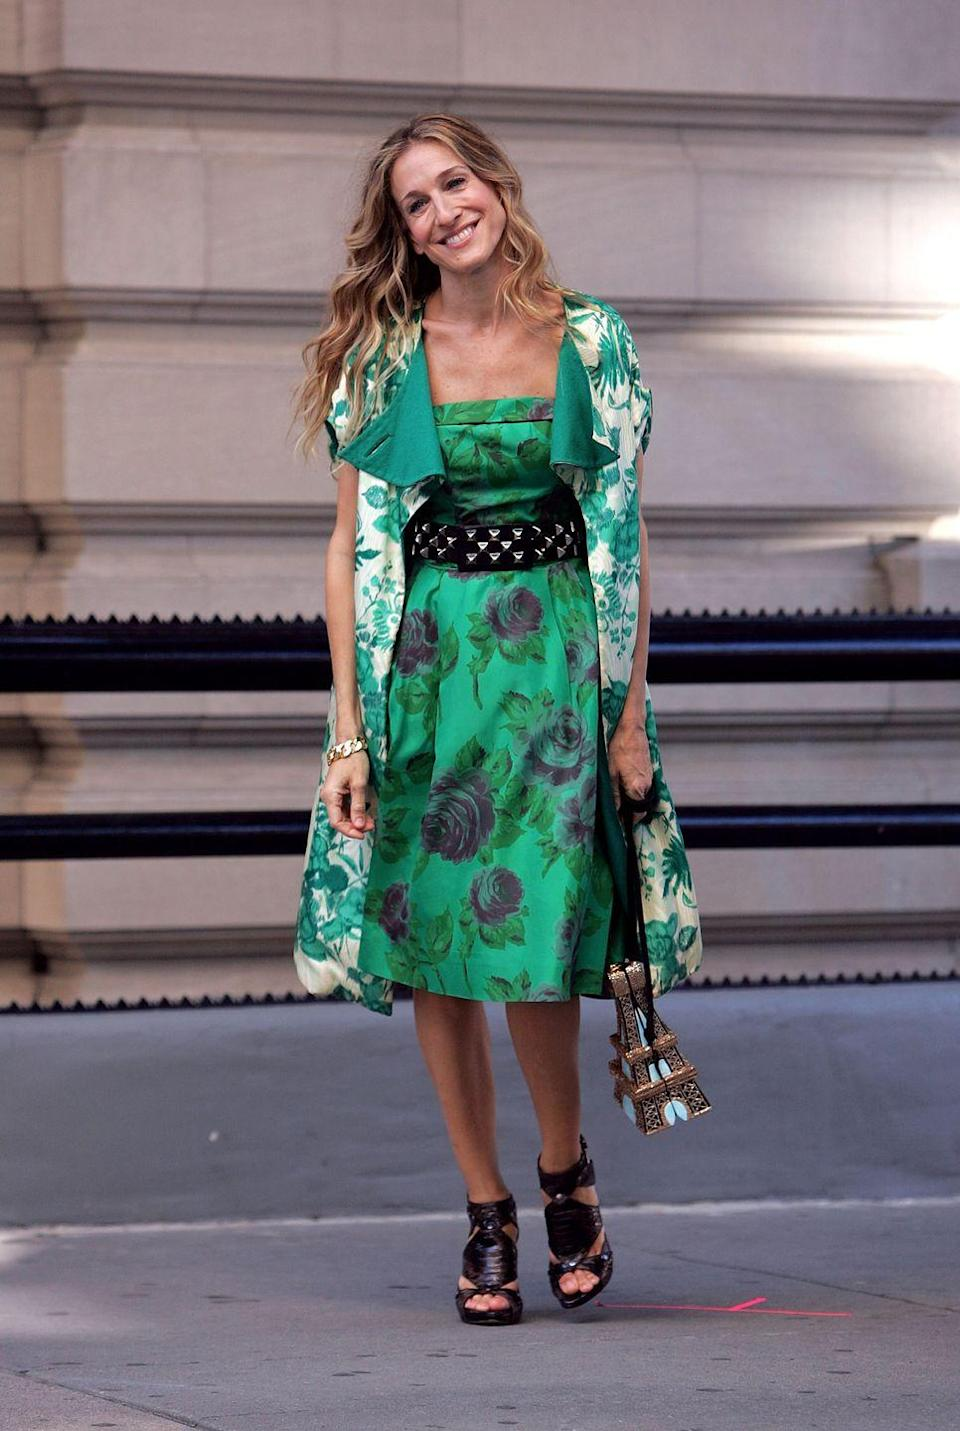 <p>More than three years after we left Carrie Bradshaw in Paris, Sarah Jessica Parker stepped back into her Manolo Blahniks to reprise her famous role. The film's opening outfit—a now-iconic contrasting mix of a green printed dress and jacket, topped off with a black spiked belt—did Bradshaw's unique style justice. </p>